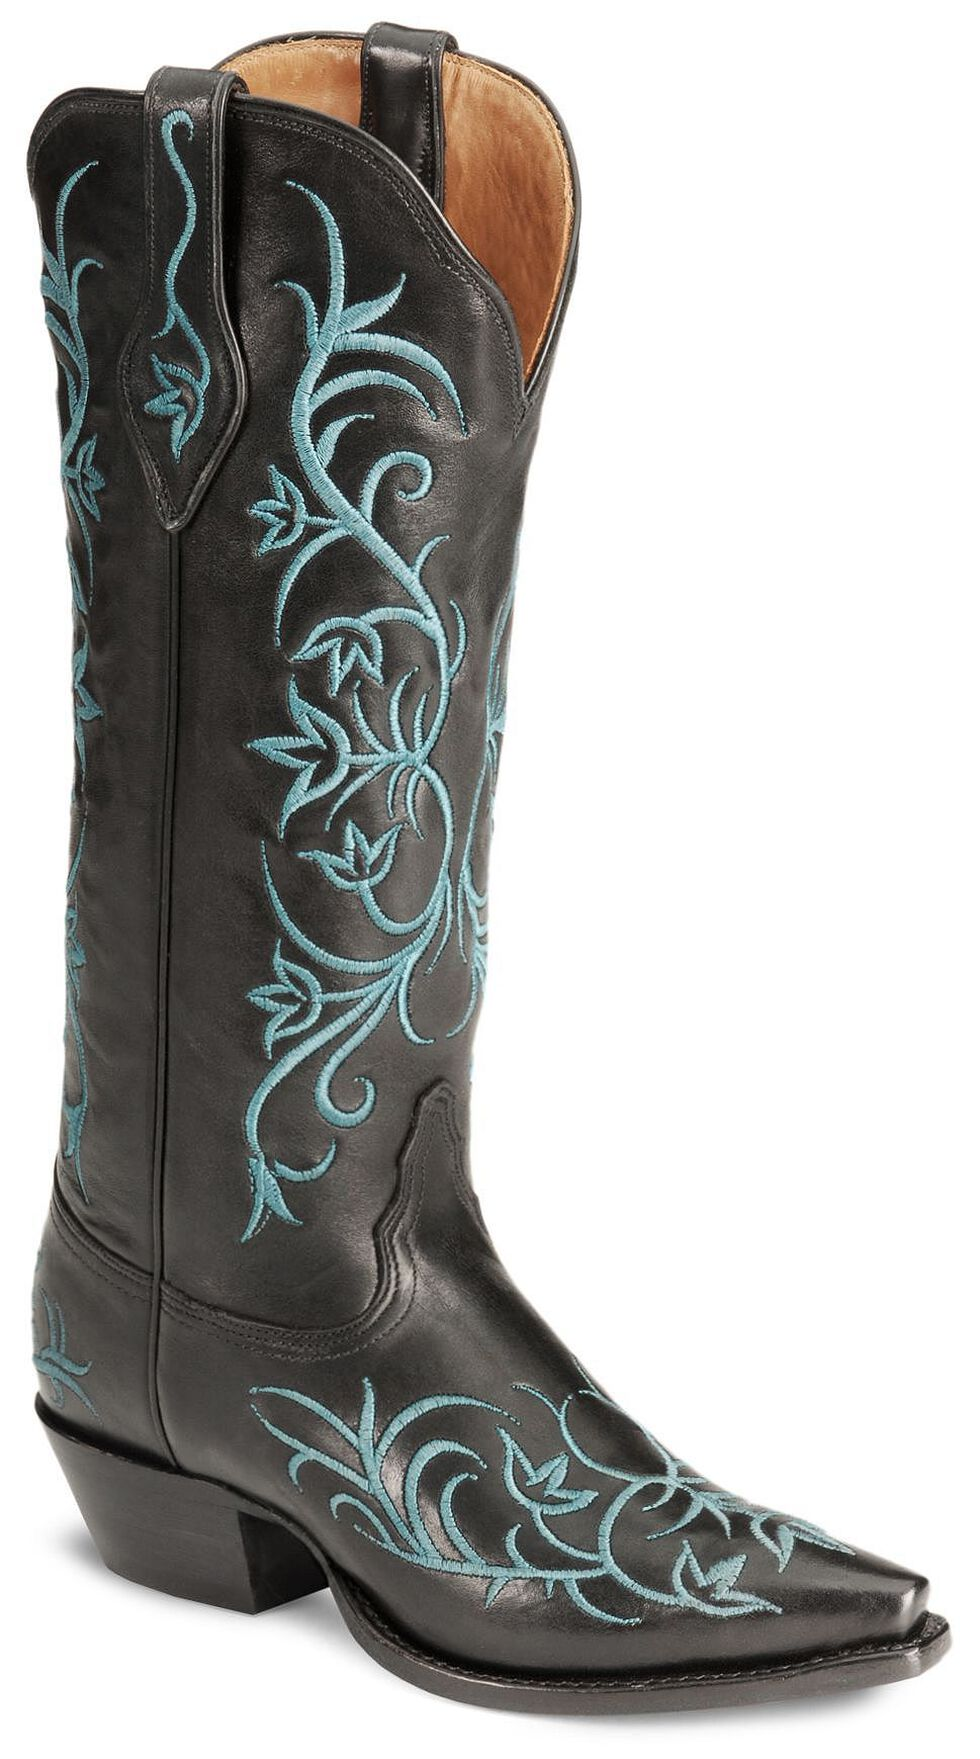 Signature Series Embroidered Floral Boot Tony Lama